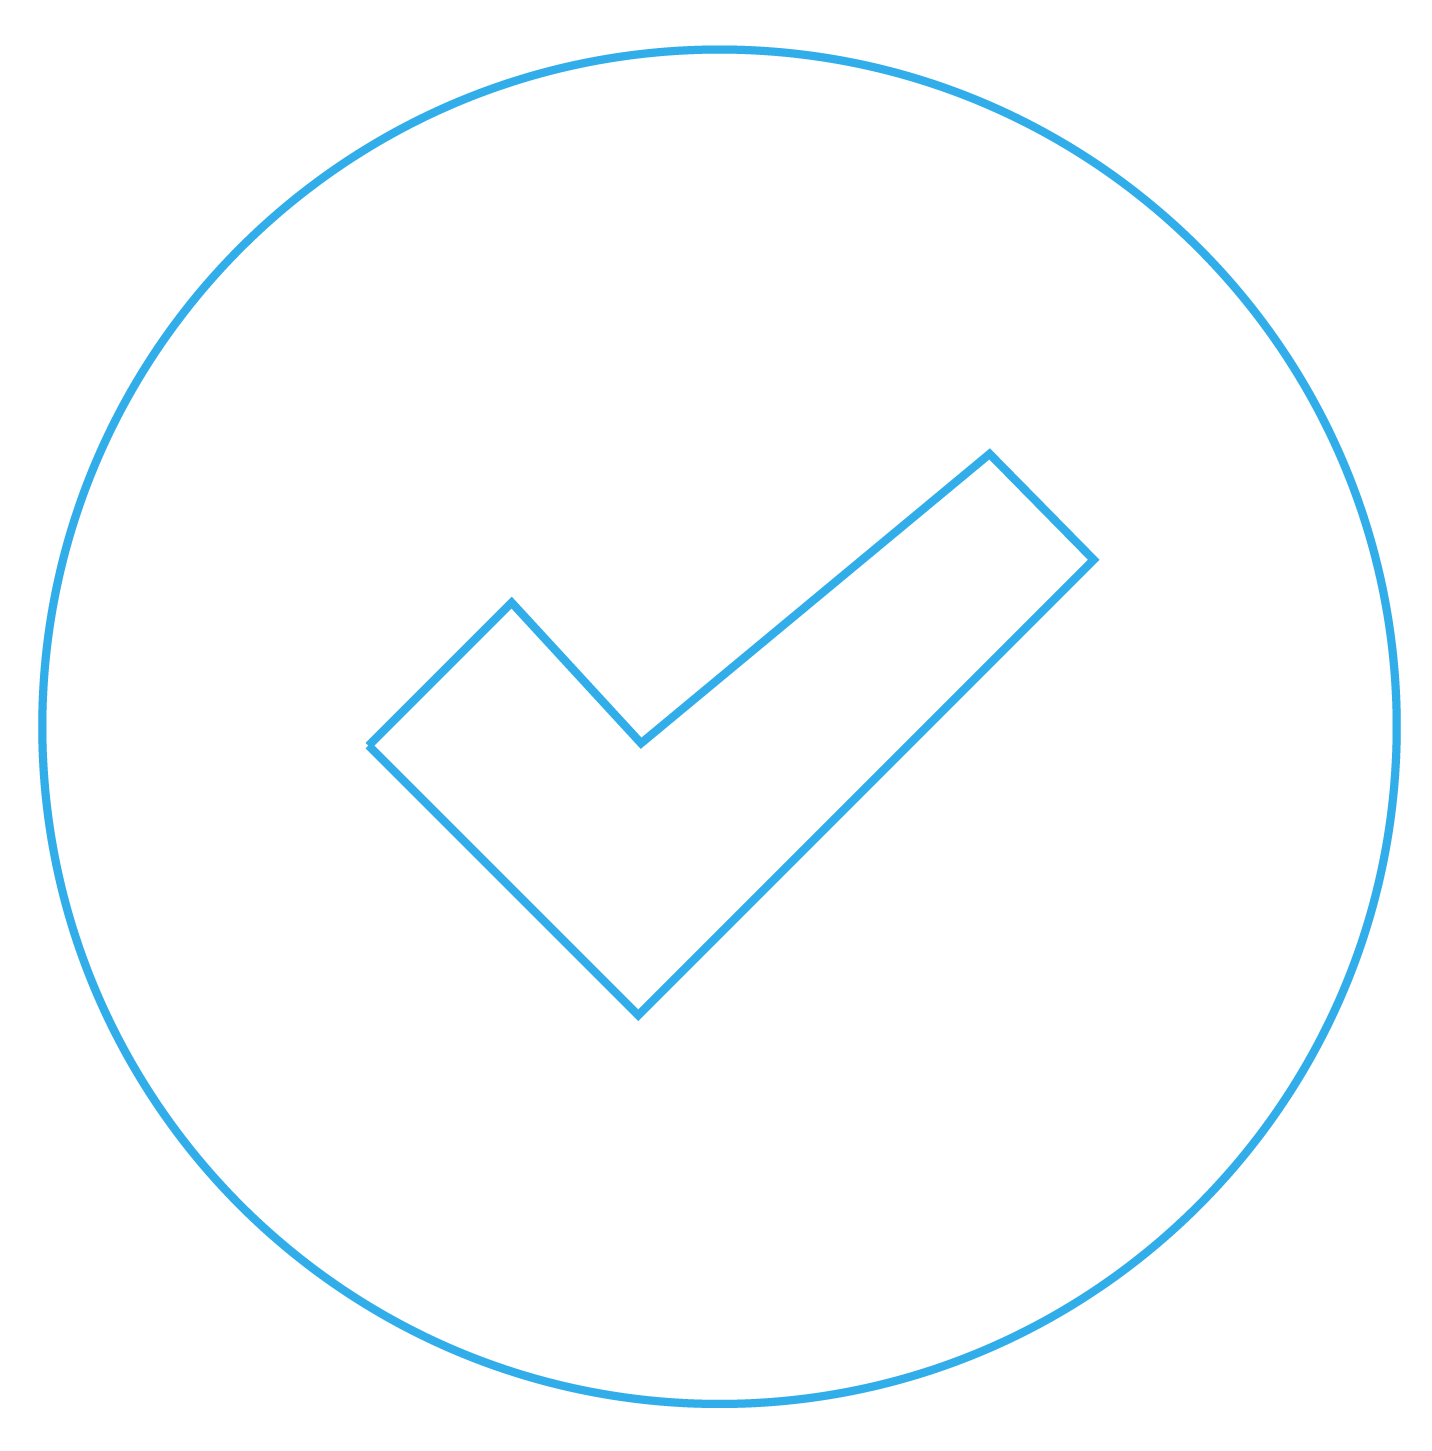 Benefits-Page-Icons-03.png